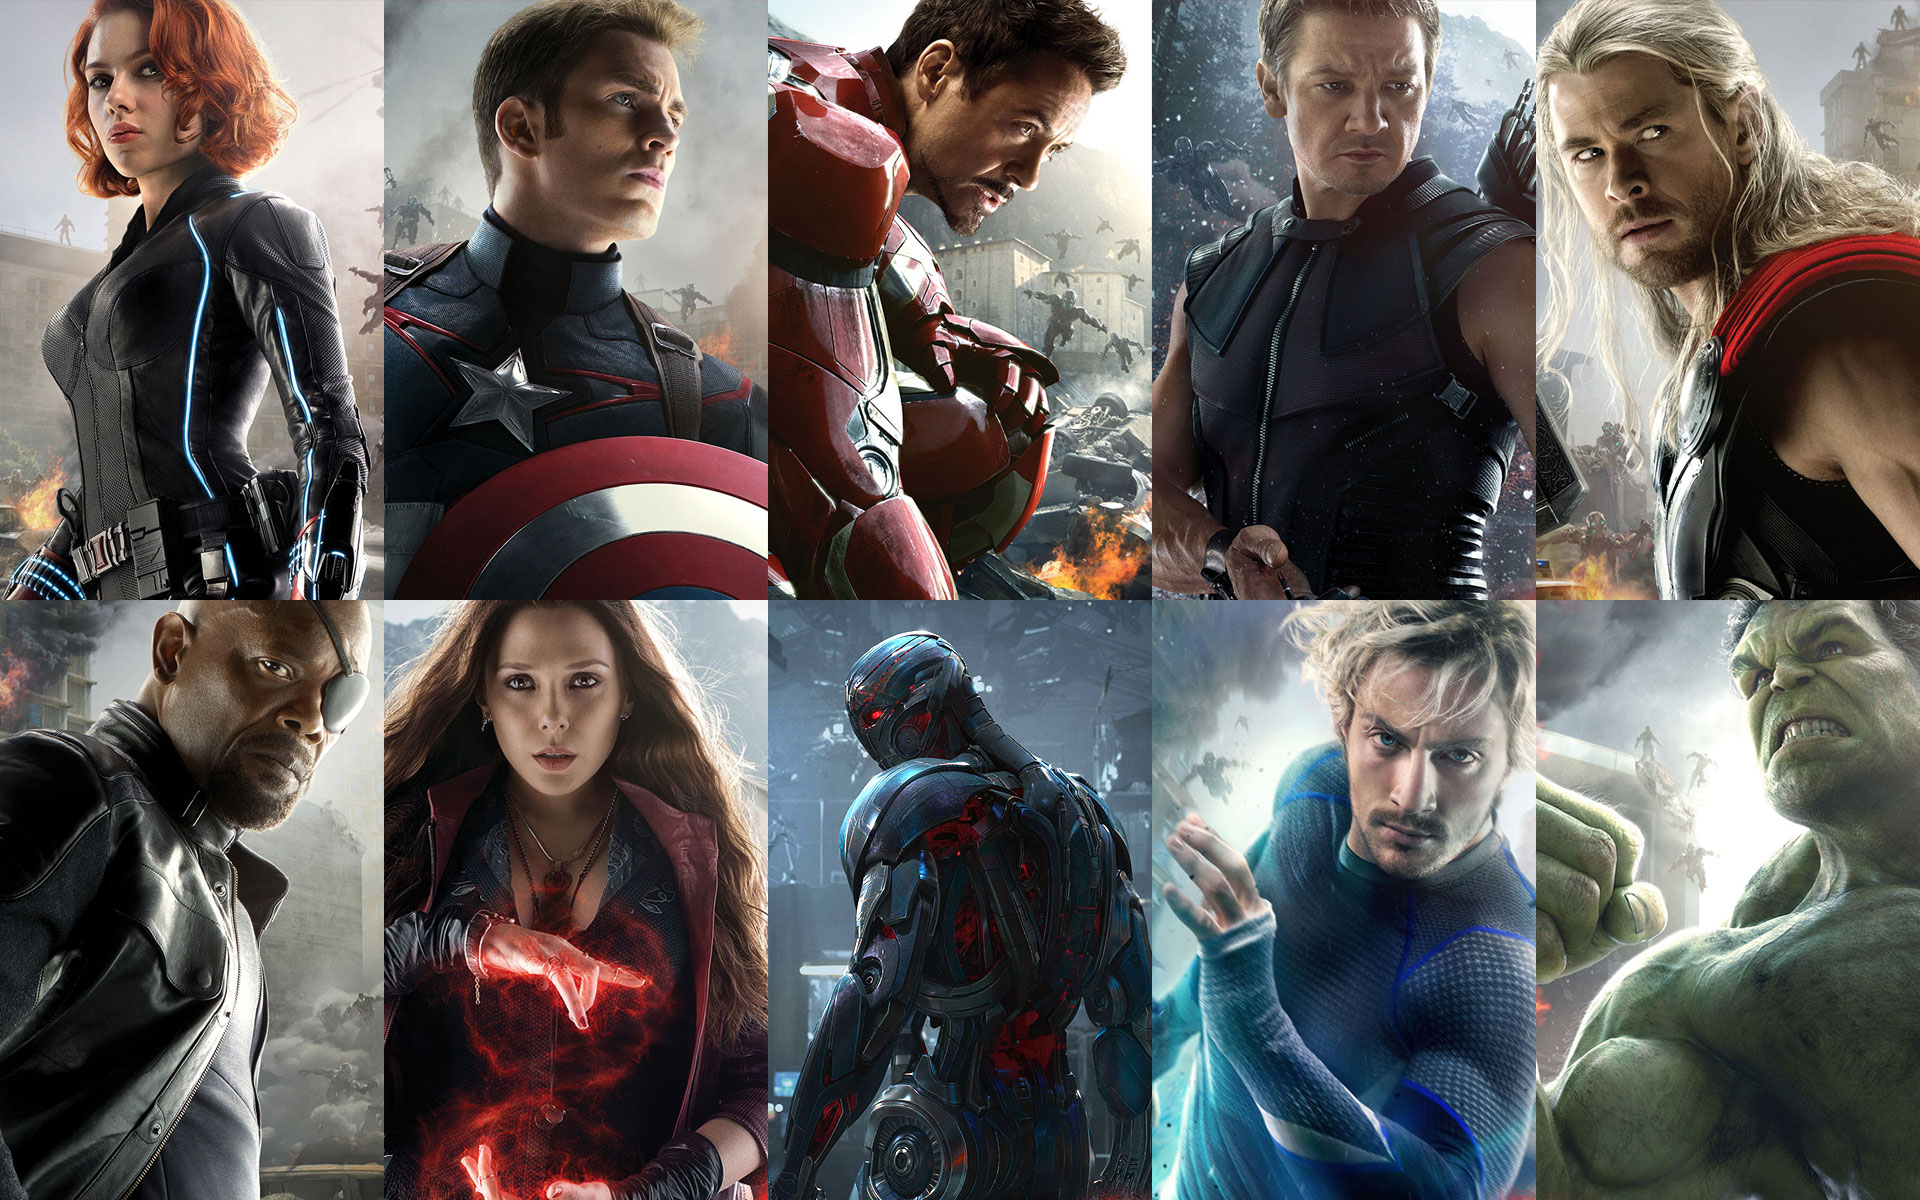 Download Hd Wallpapers Of Avengers Group 1920x1200